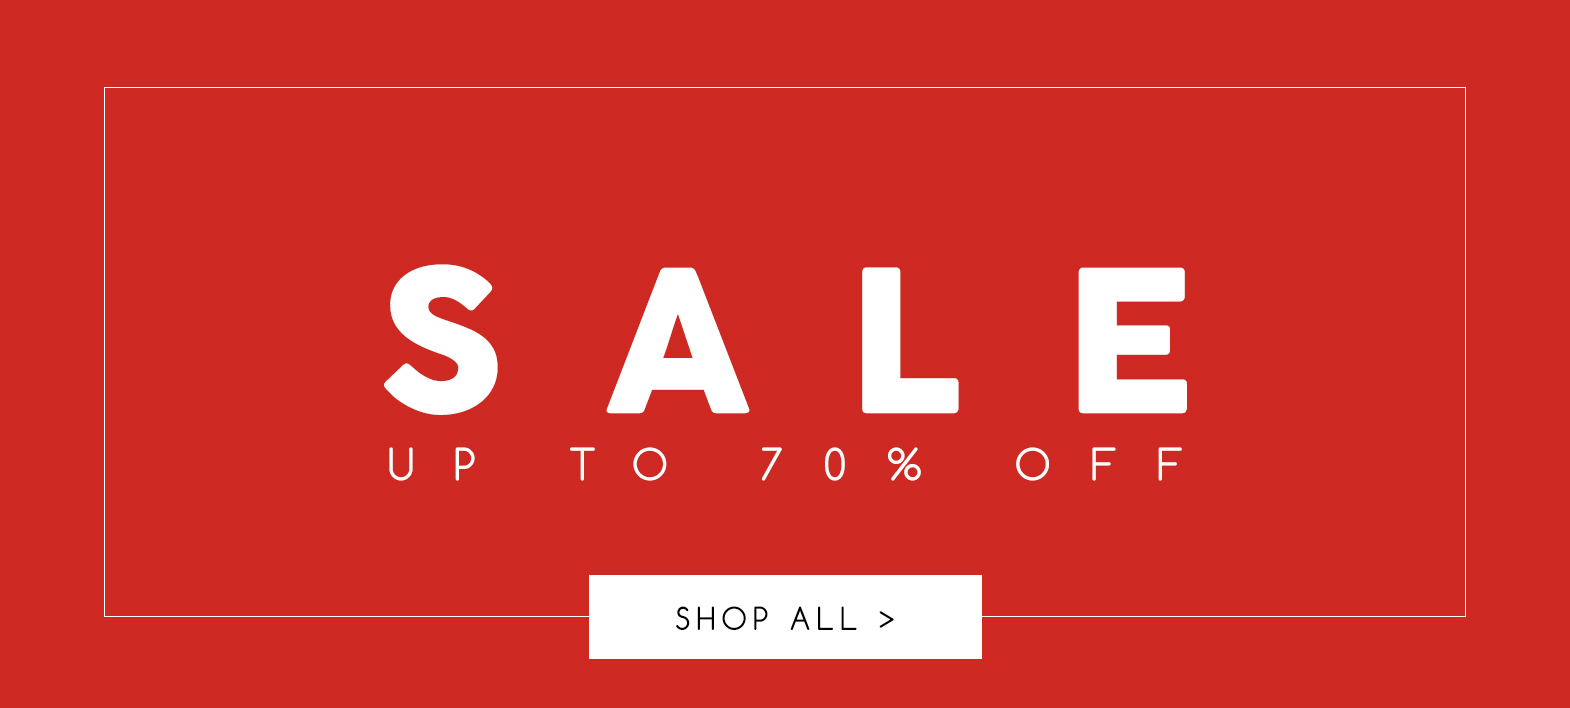 Shop All Sale >